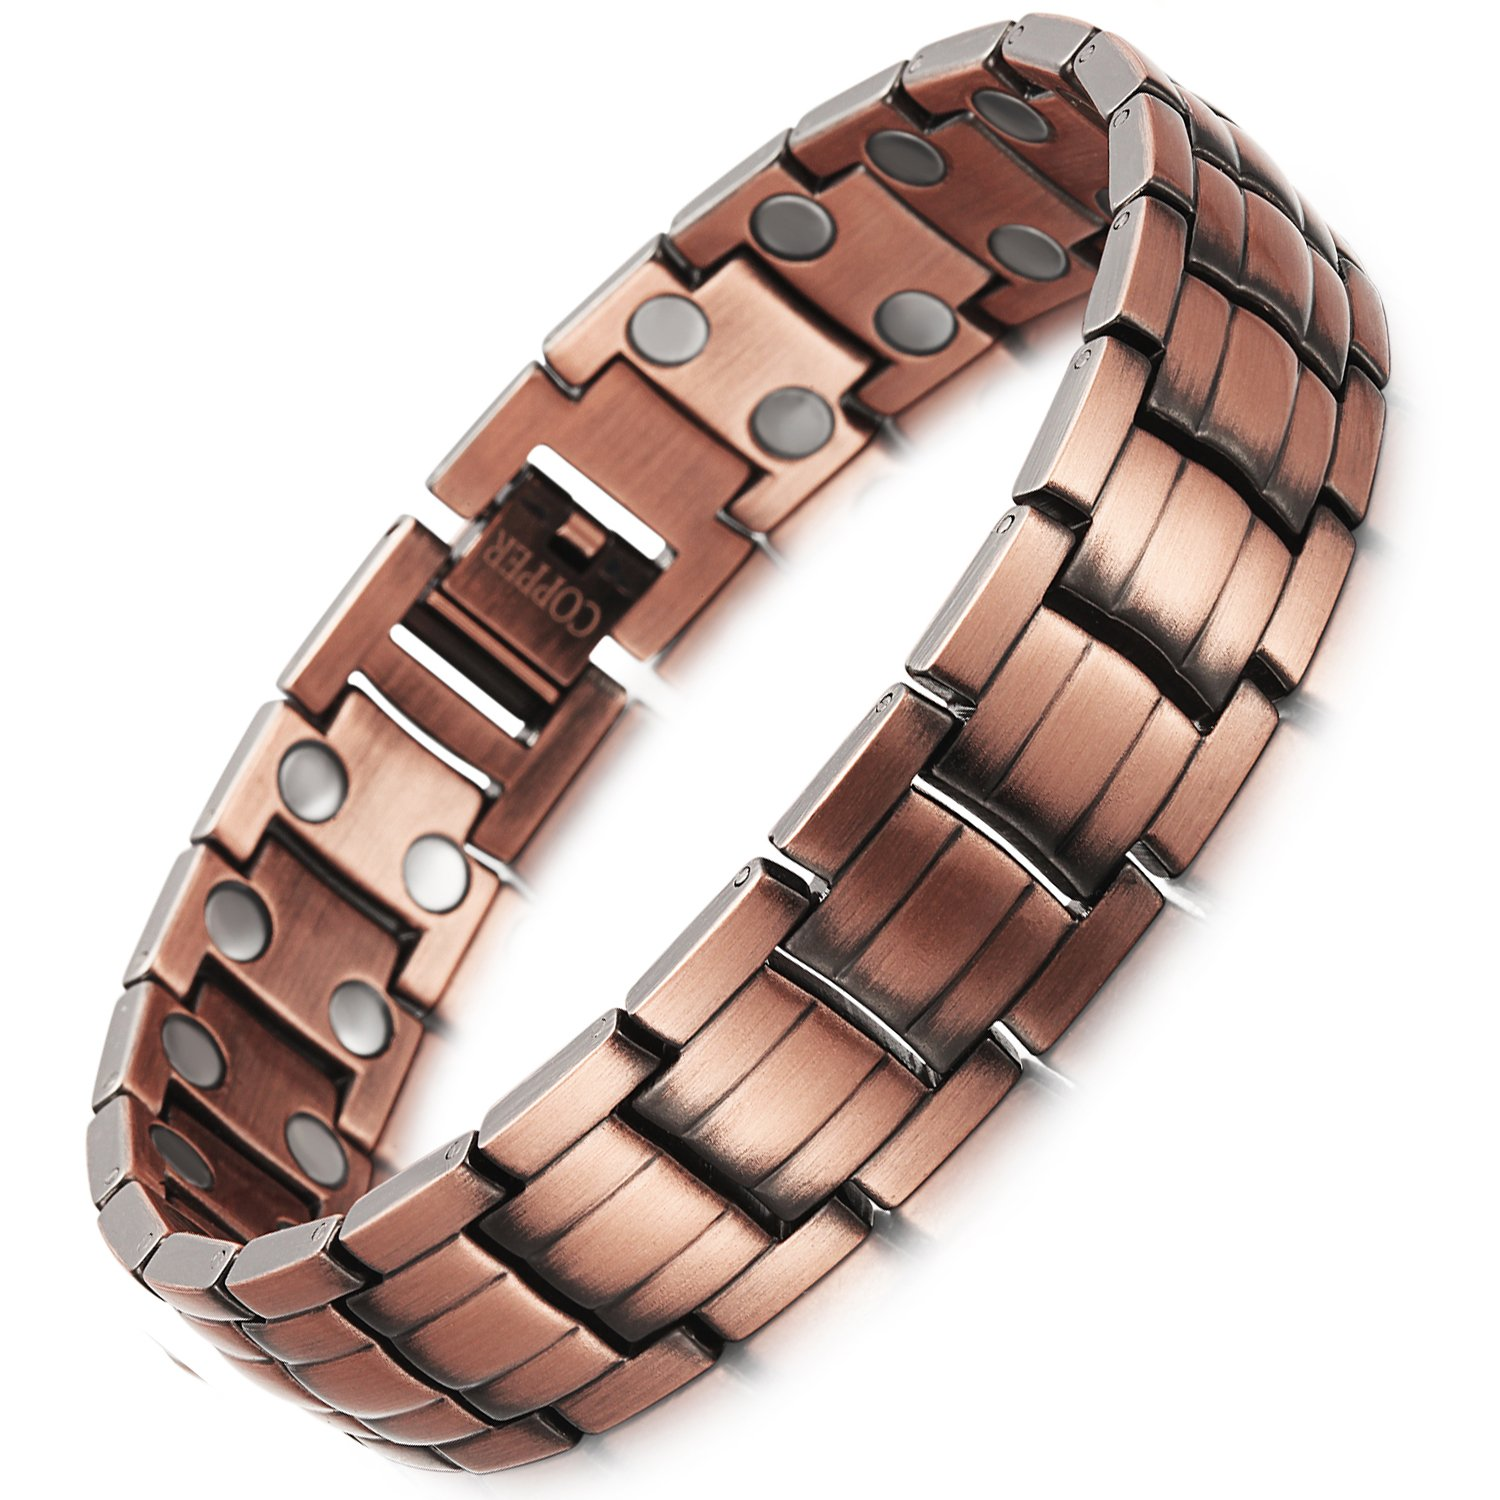 PURE COPPER Magnets Therapy Bracelet Pain Relief for Arthritis and Carpal Tunnel Health Care Elements For Men (A)